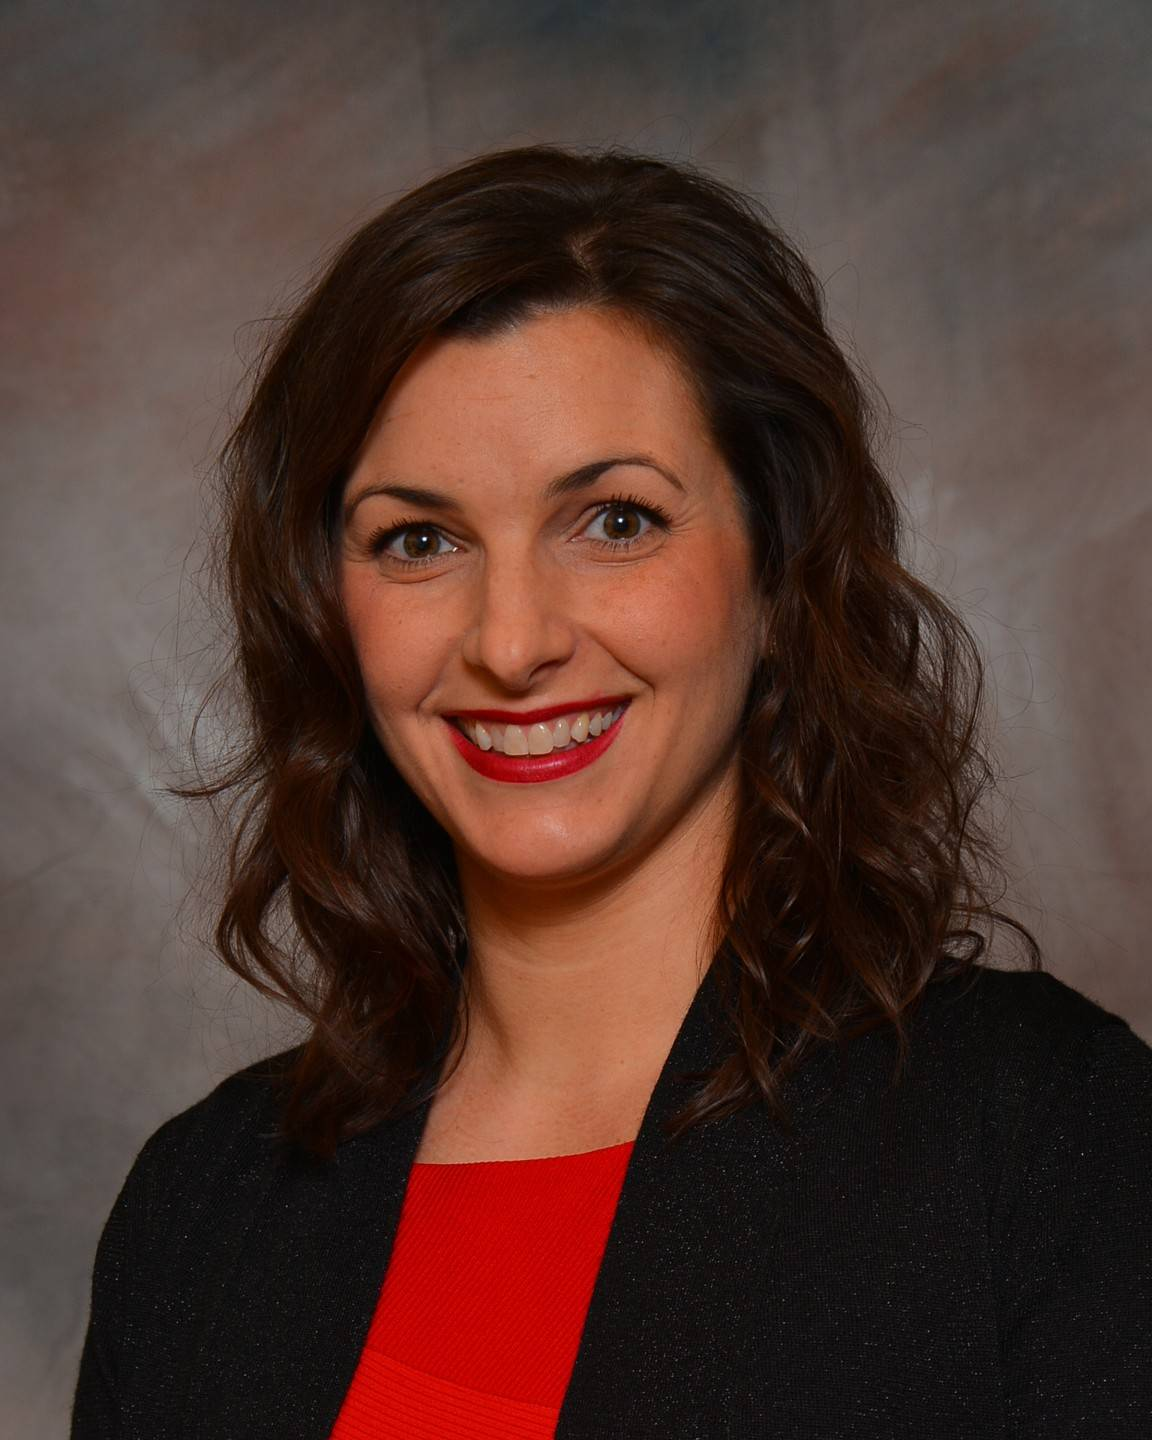 Dr. Katherine Narbone